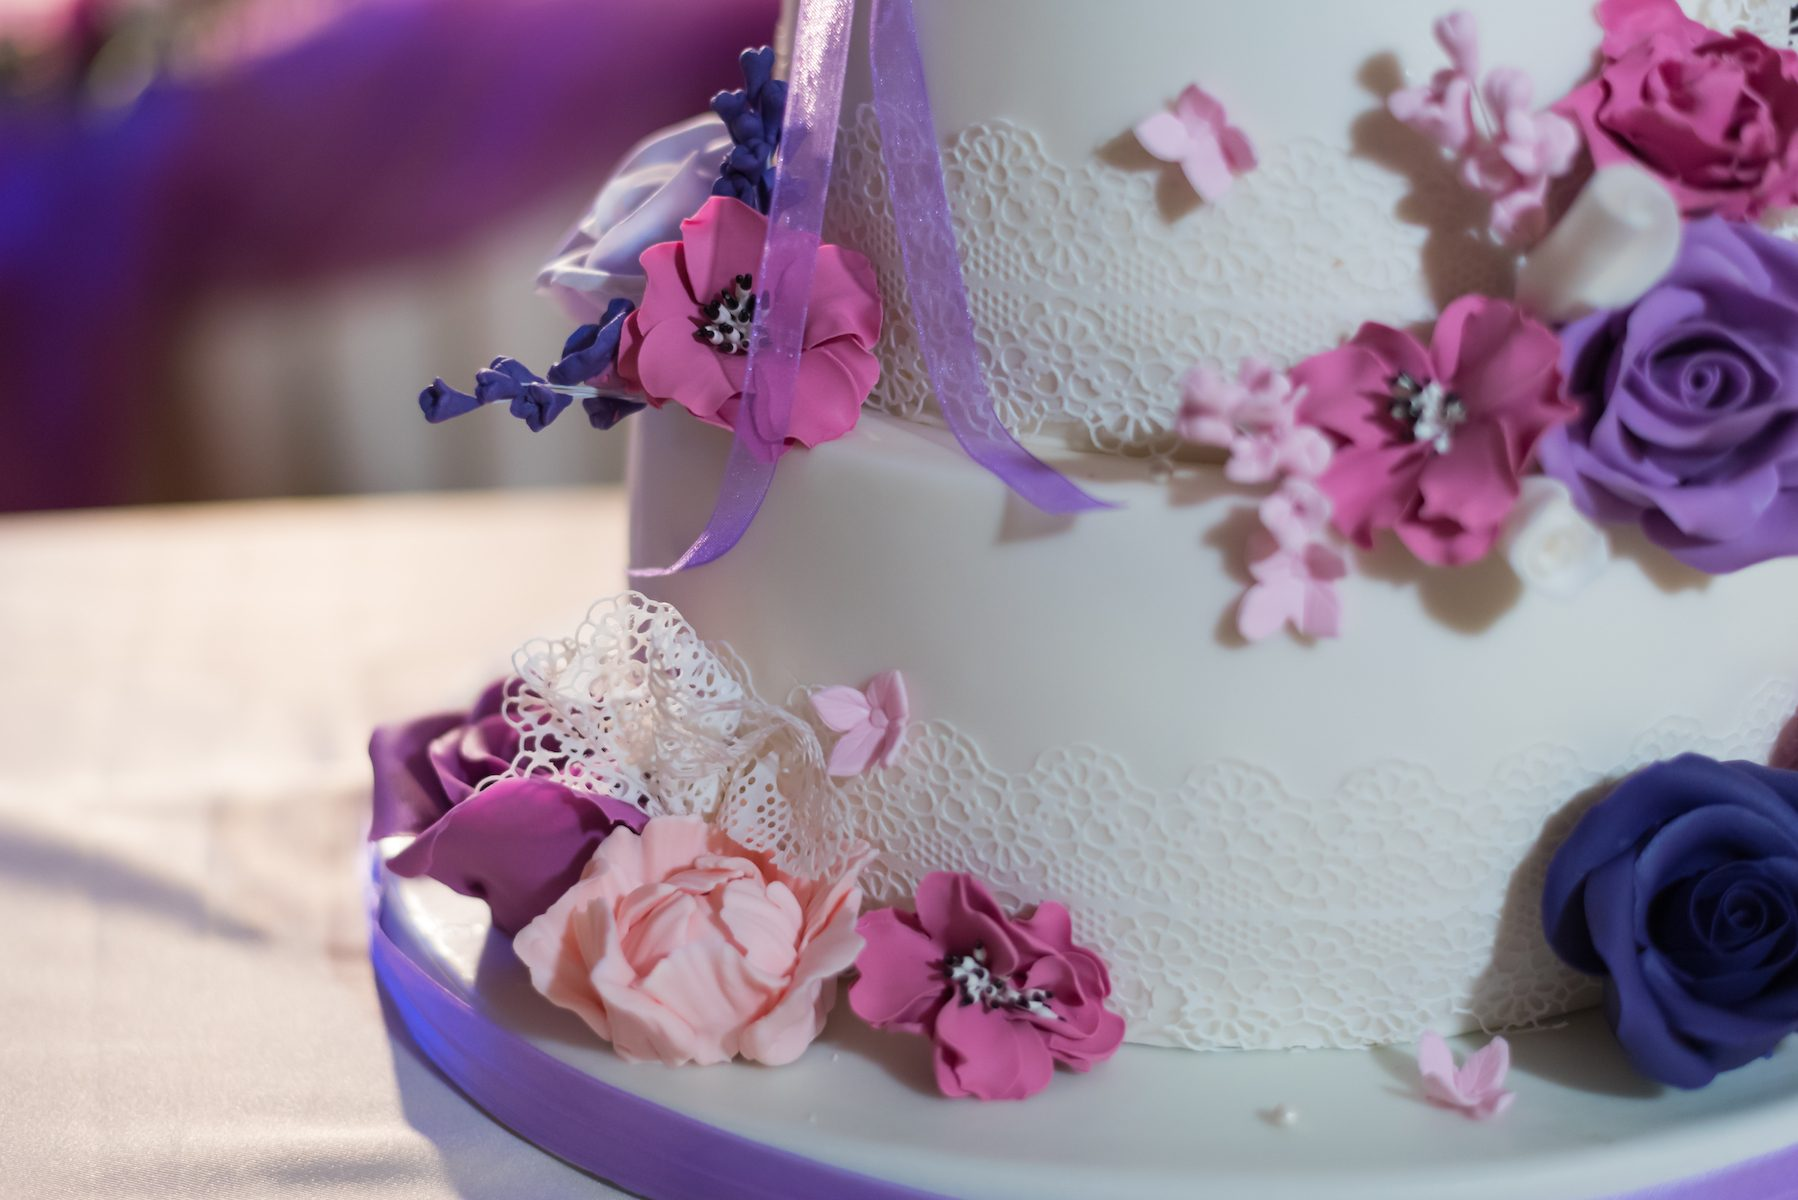 Beautiful fondant covered cake decorated with edible lace and bouquet of purple flowers